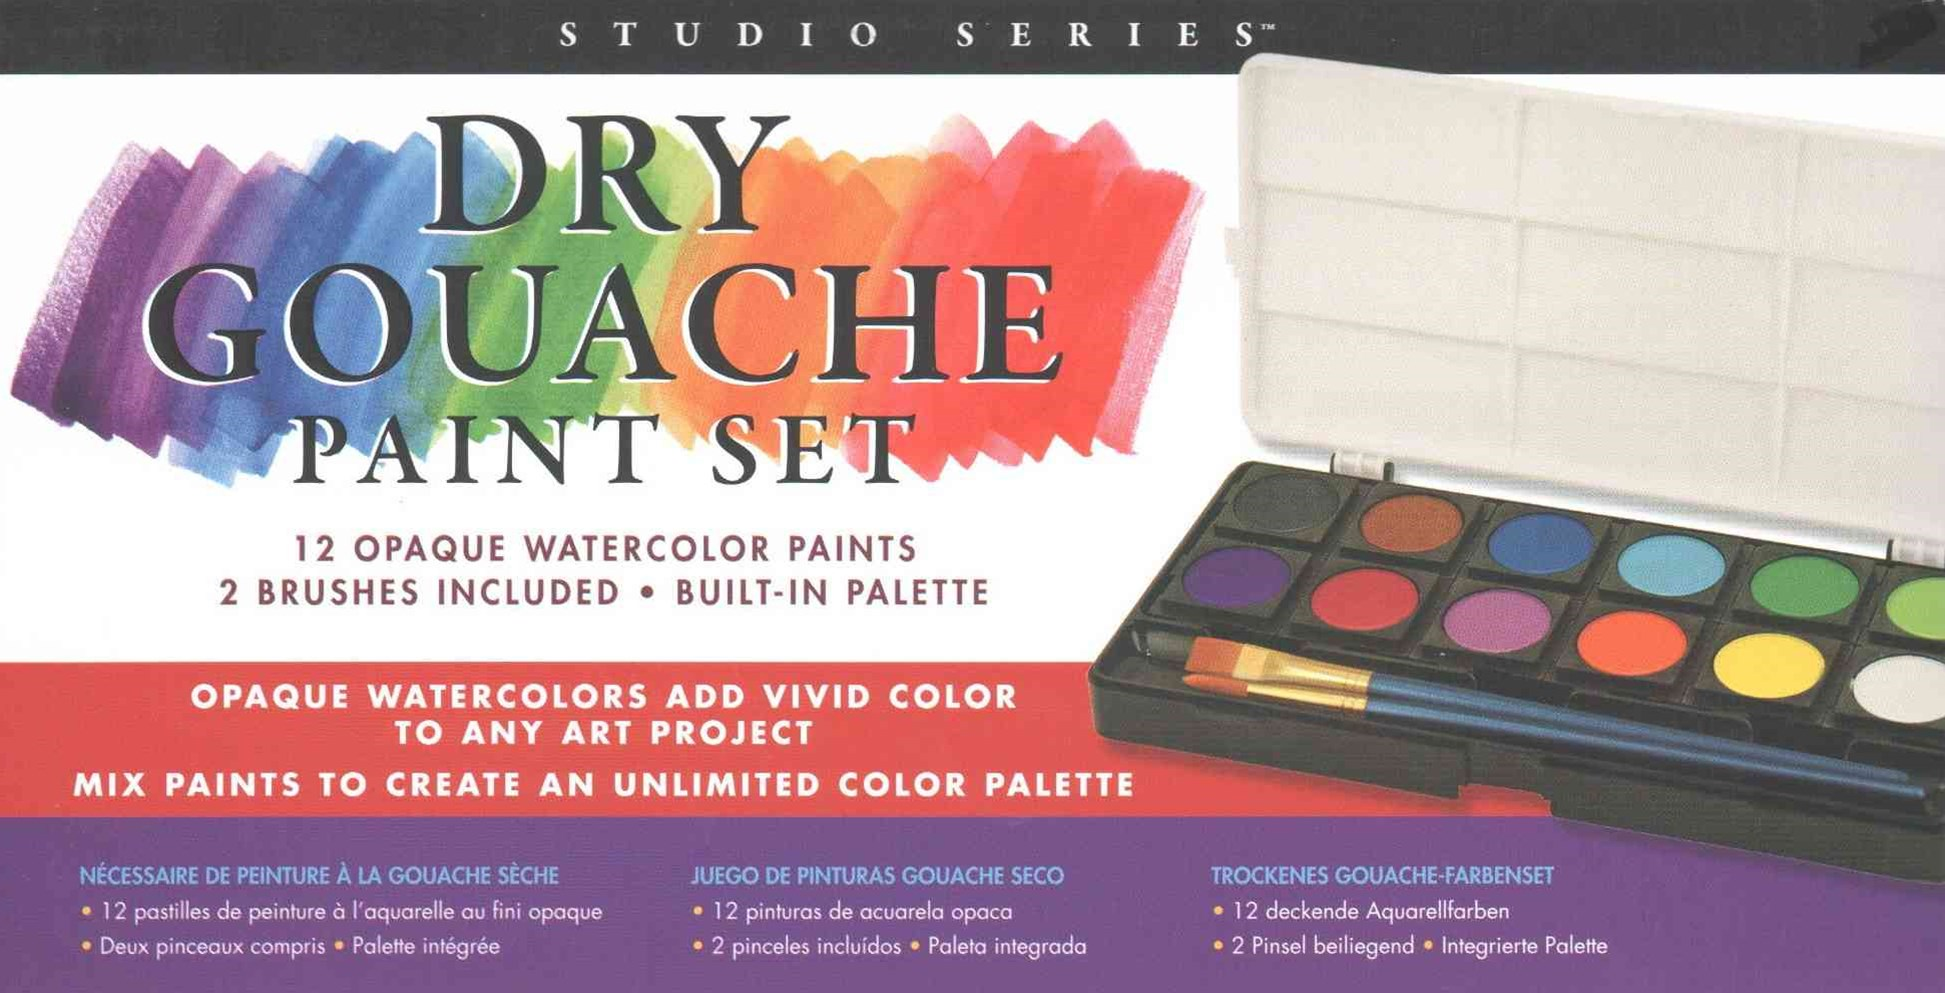 Studio Series Dry Gouache Paint Set